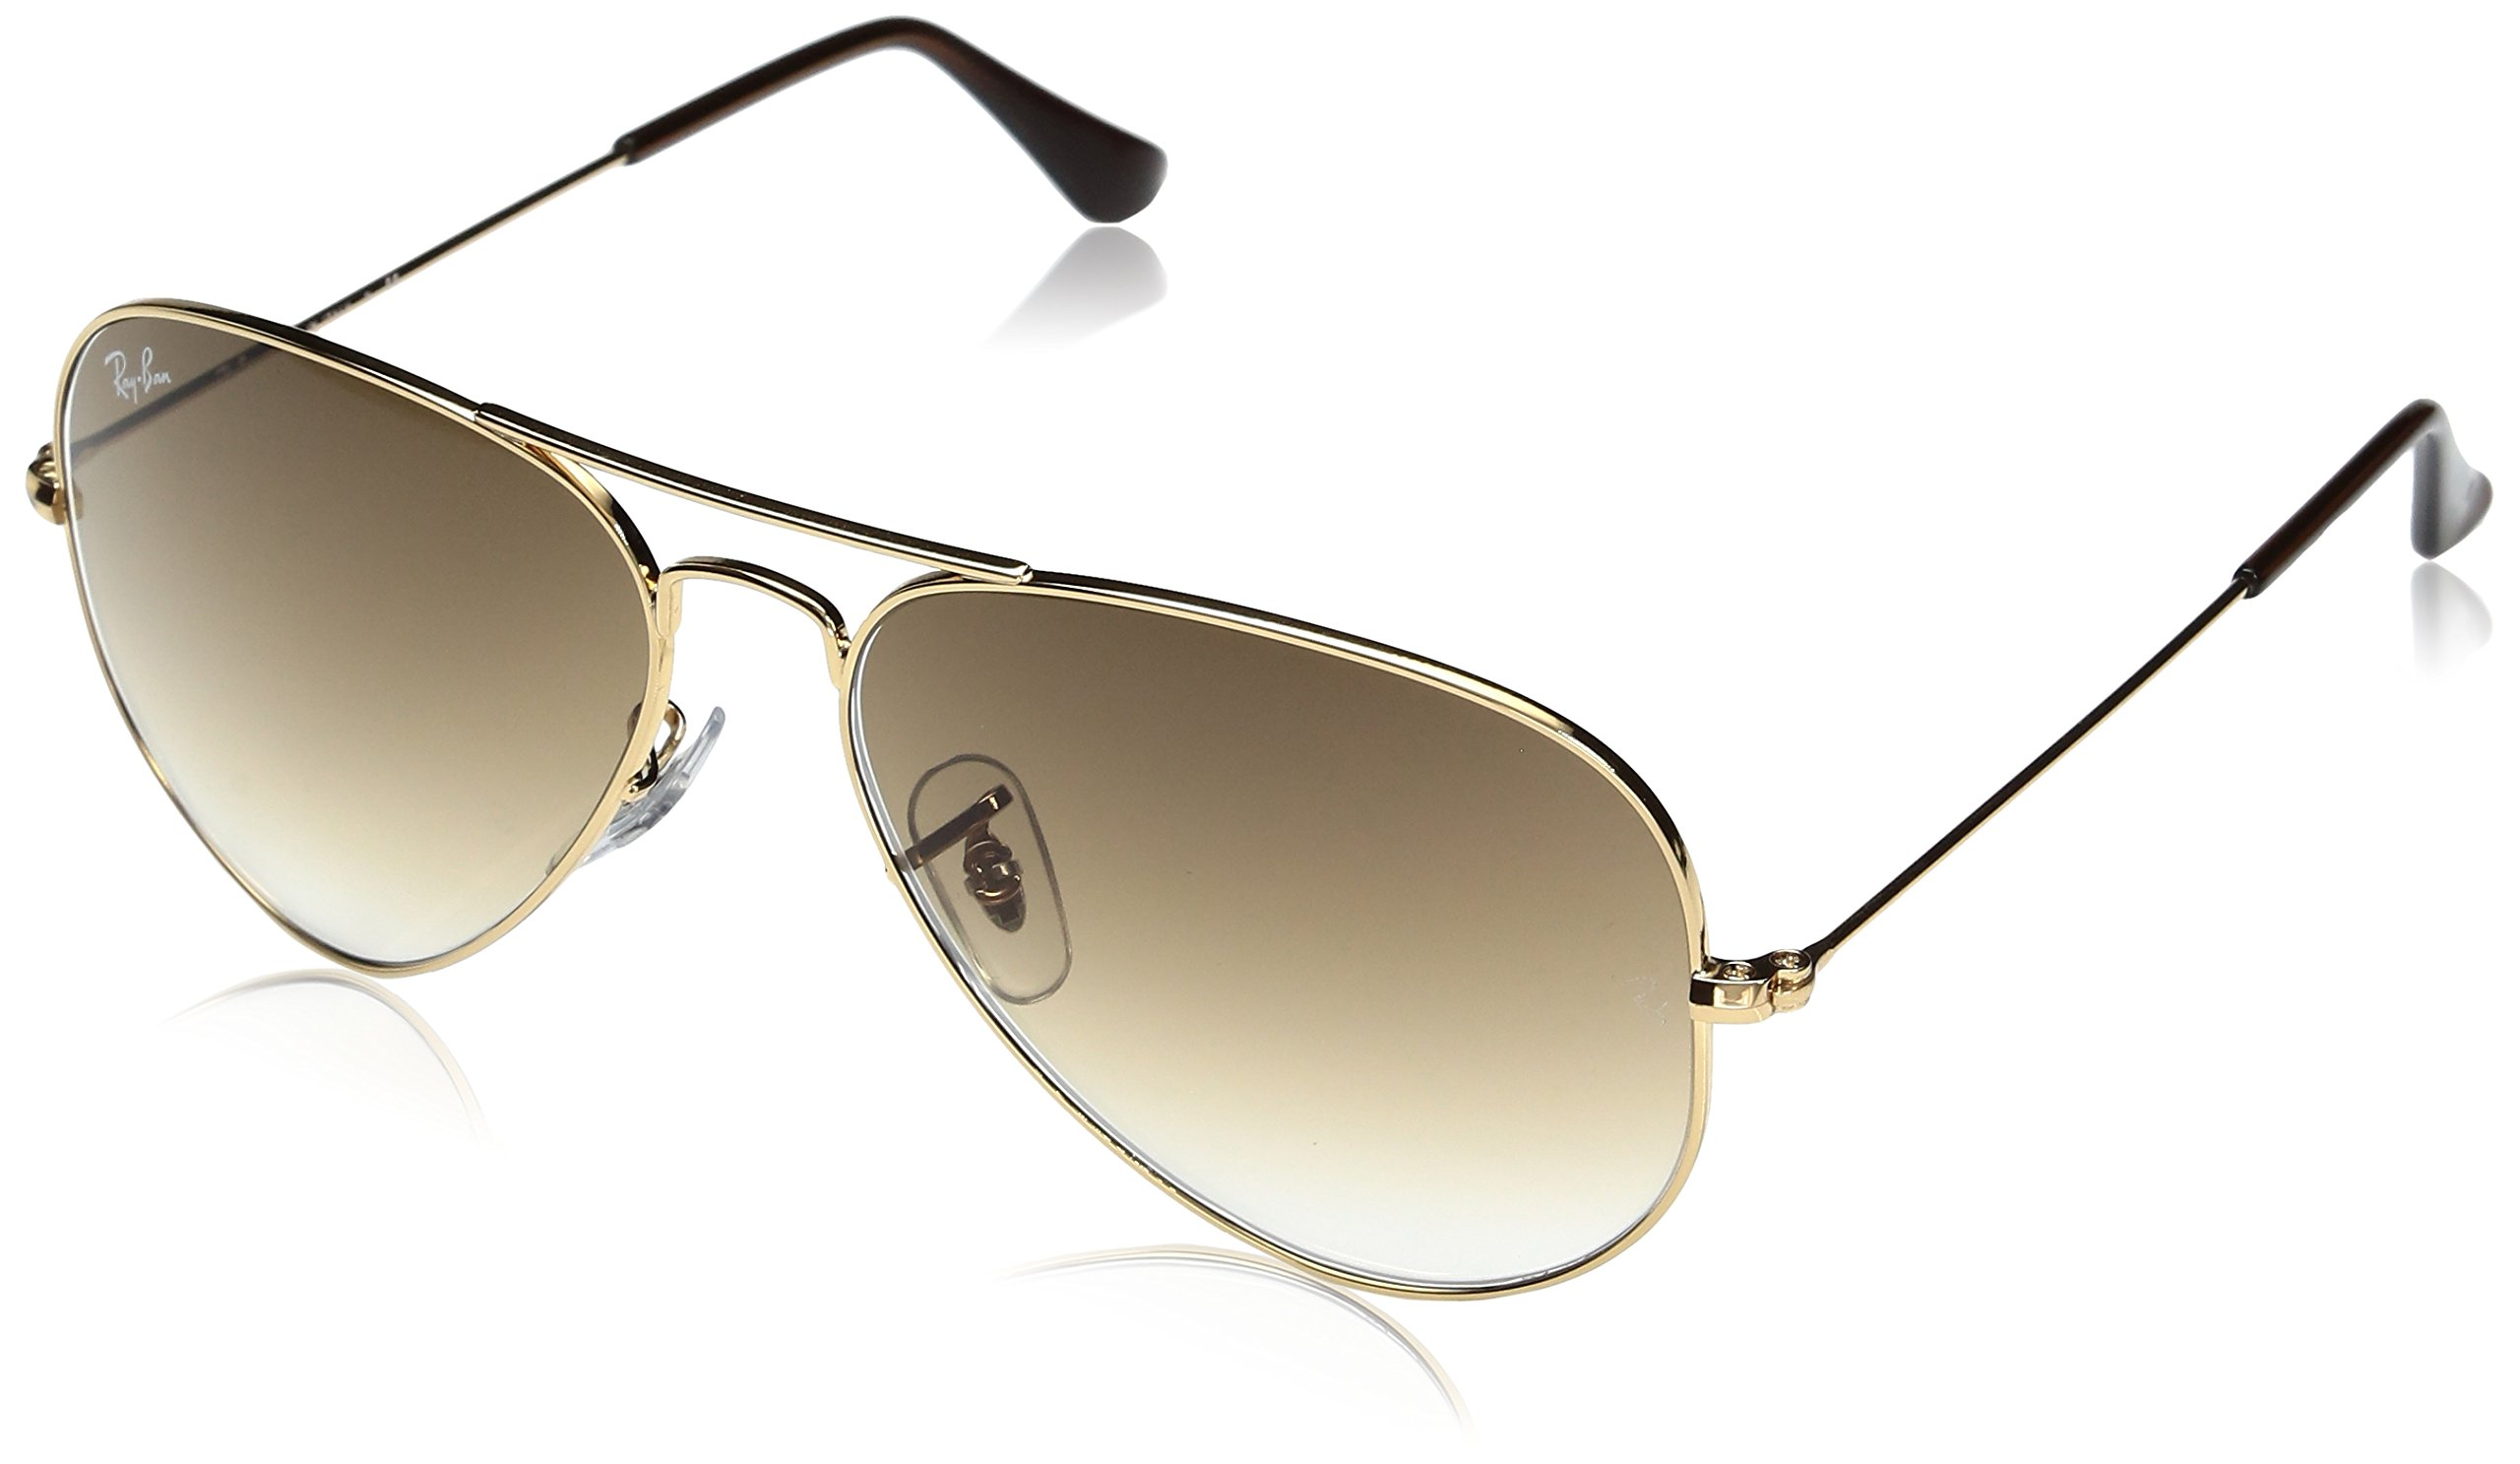 Ray-Ban Aviator Classic, Shiny Gold/ Crystal Green, One Size